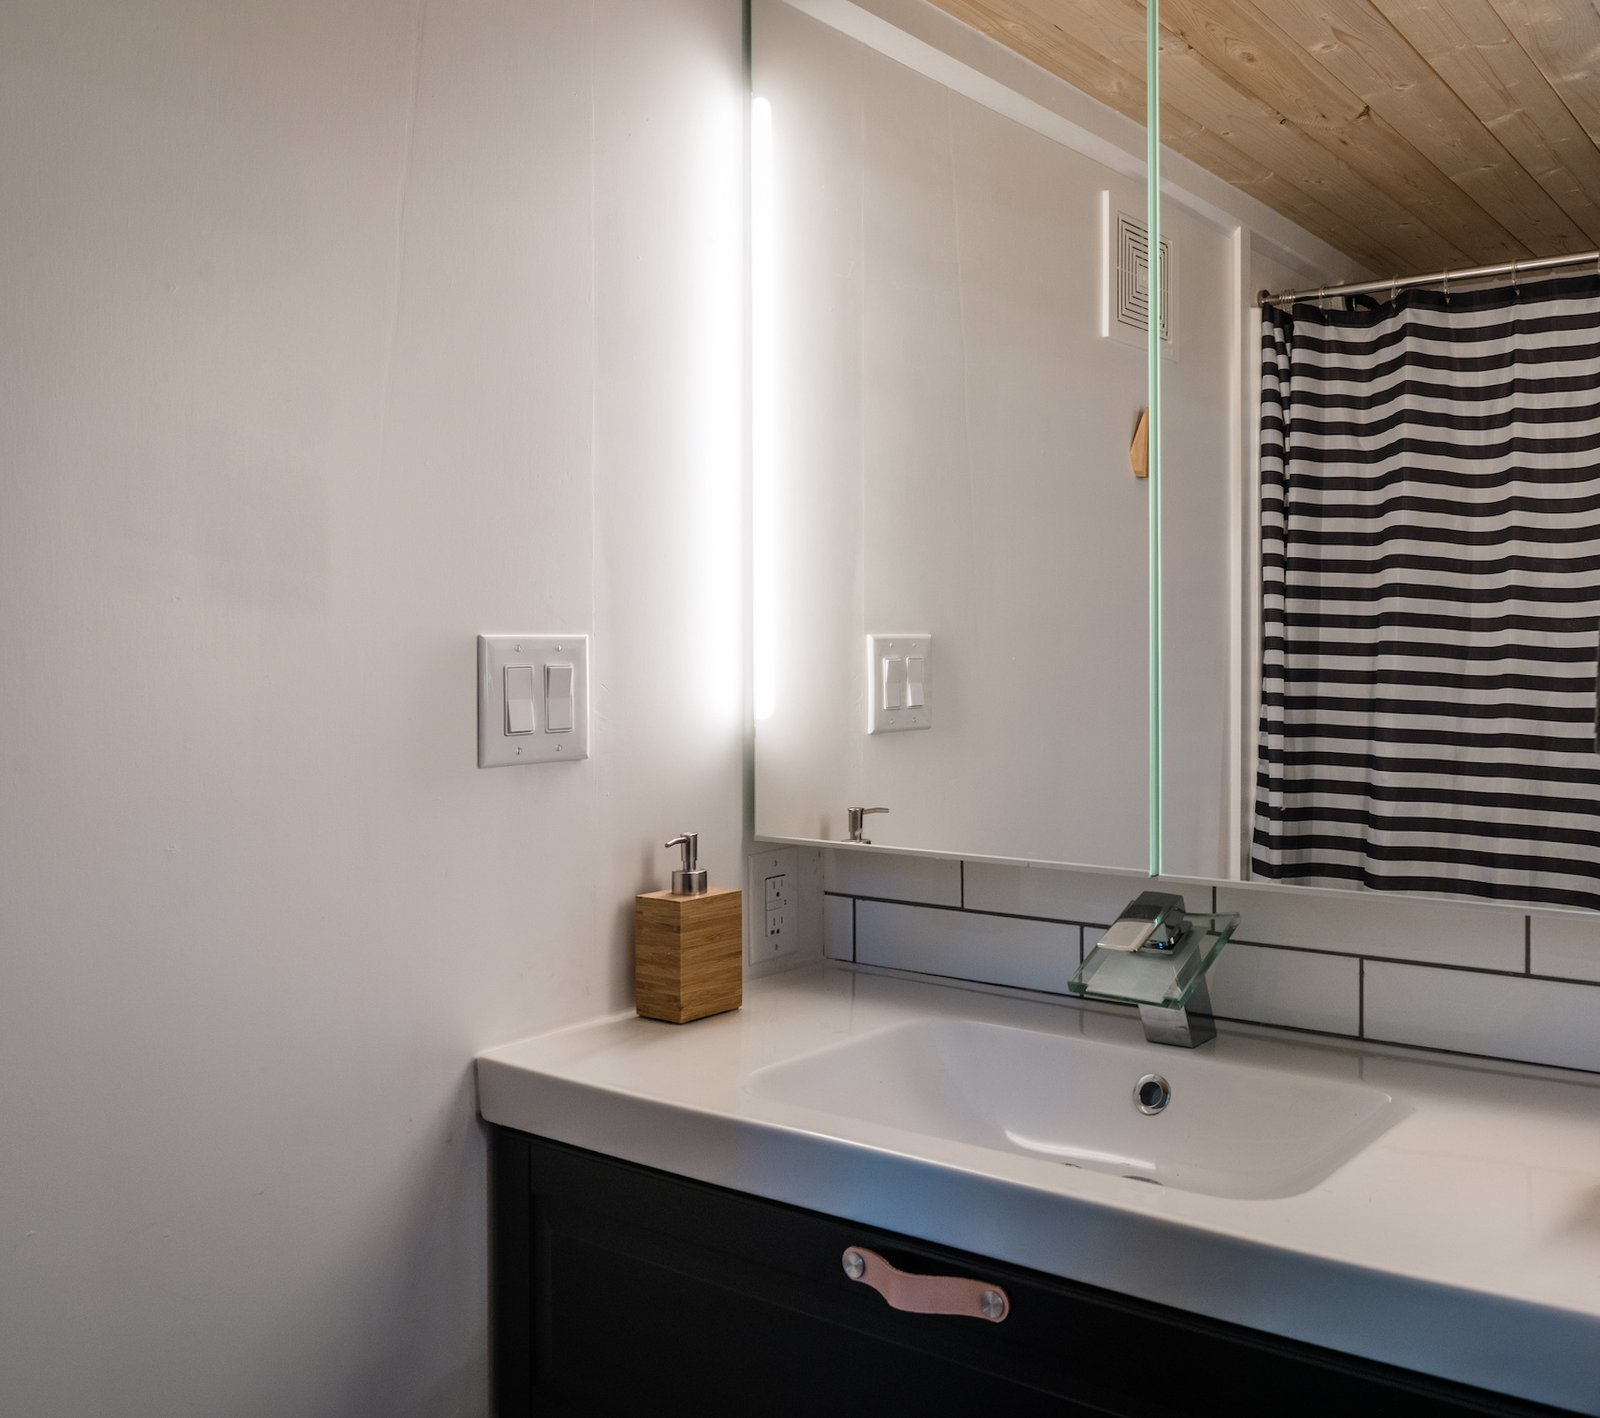 A full bathroom along the back of the lower level features a shower and toilet outfitted for septic hookup. The space also features a washer/dryer unit in the opposite corner.  Photo 8 of 11 in A Furnished Tiny Home With Japanese and Scandinavian Vibes Is Offered at $99K